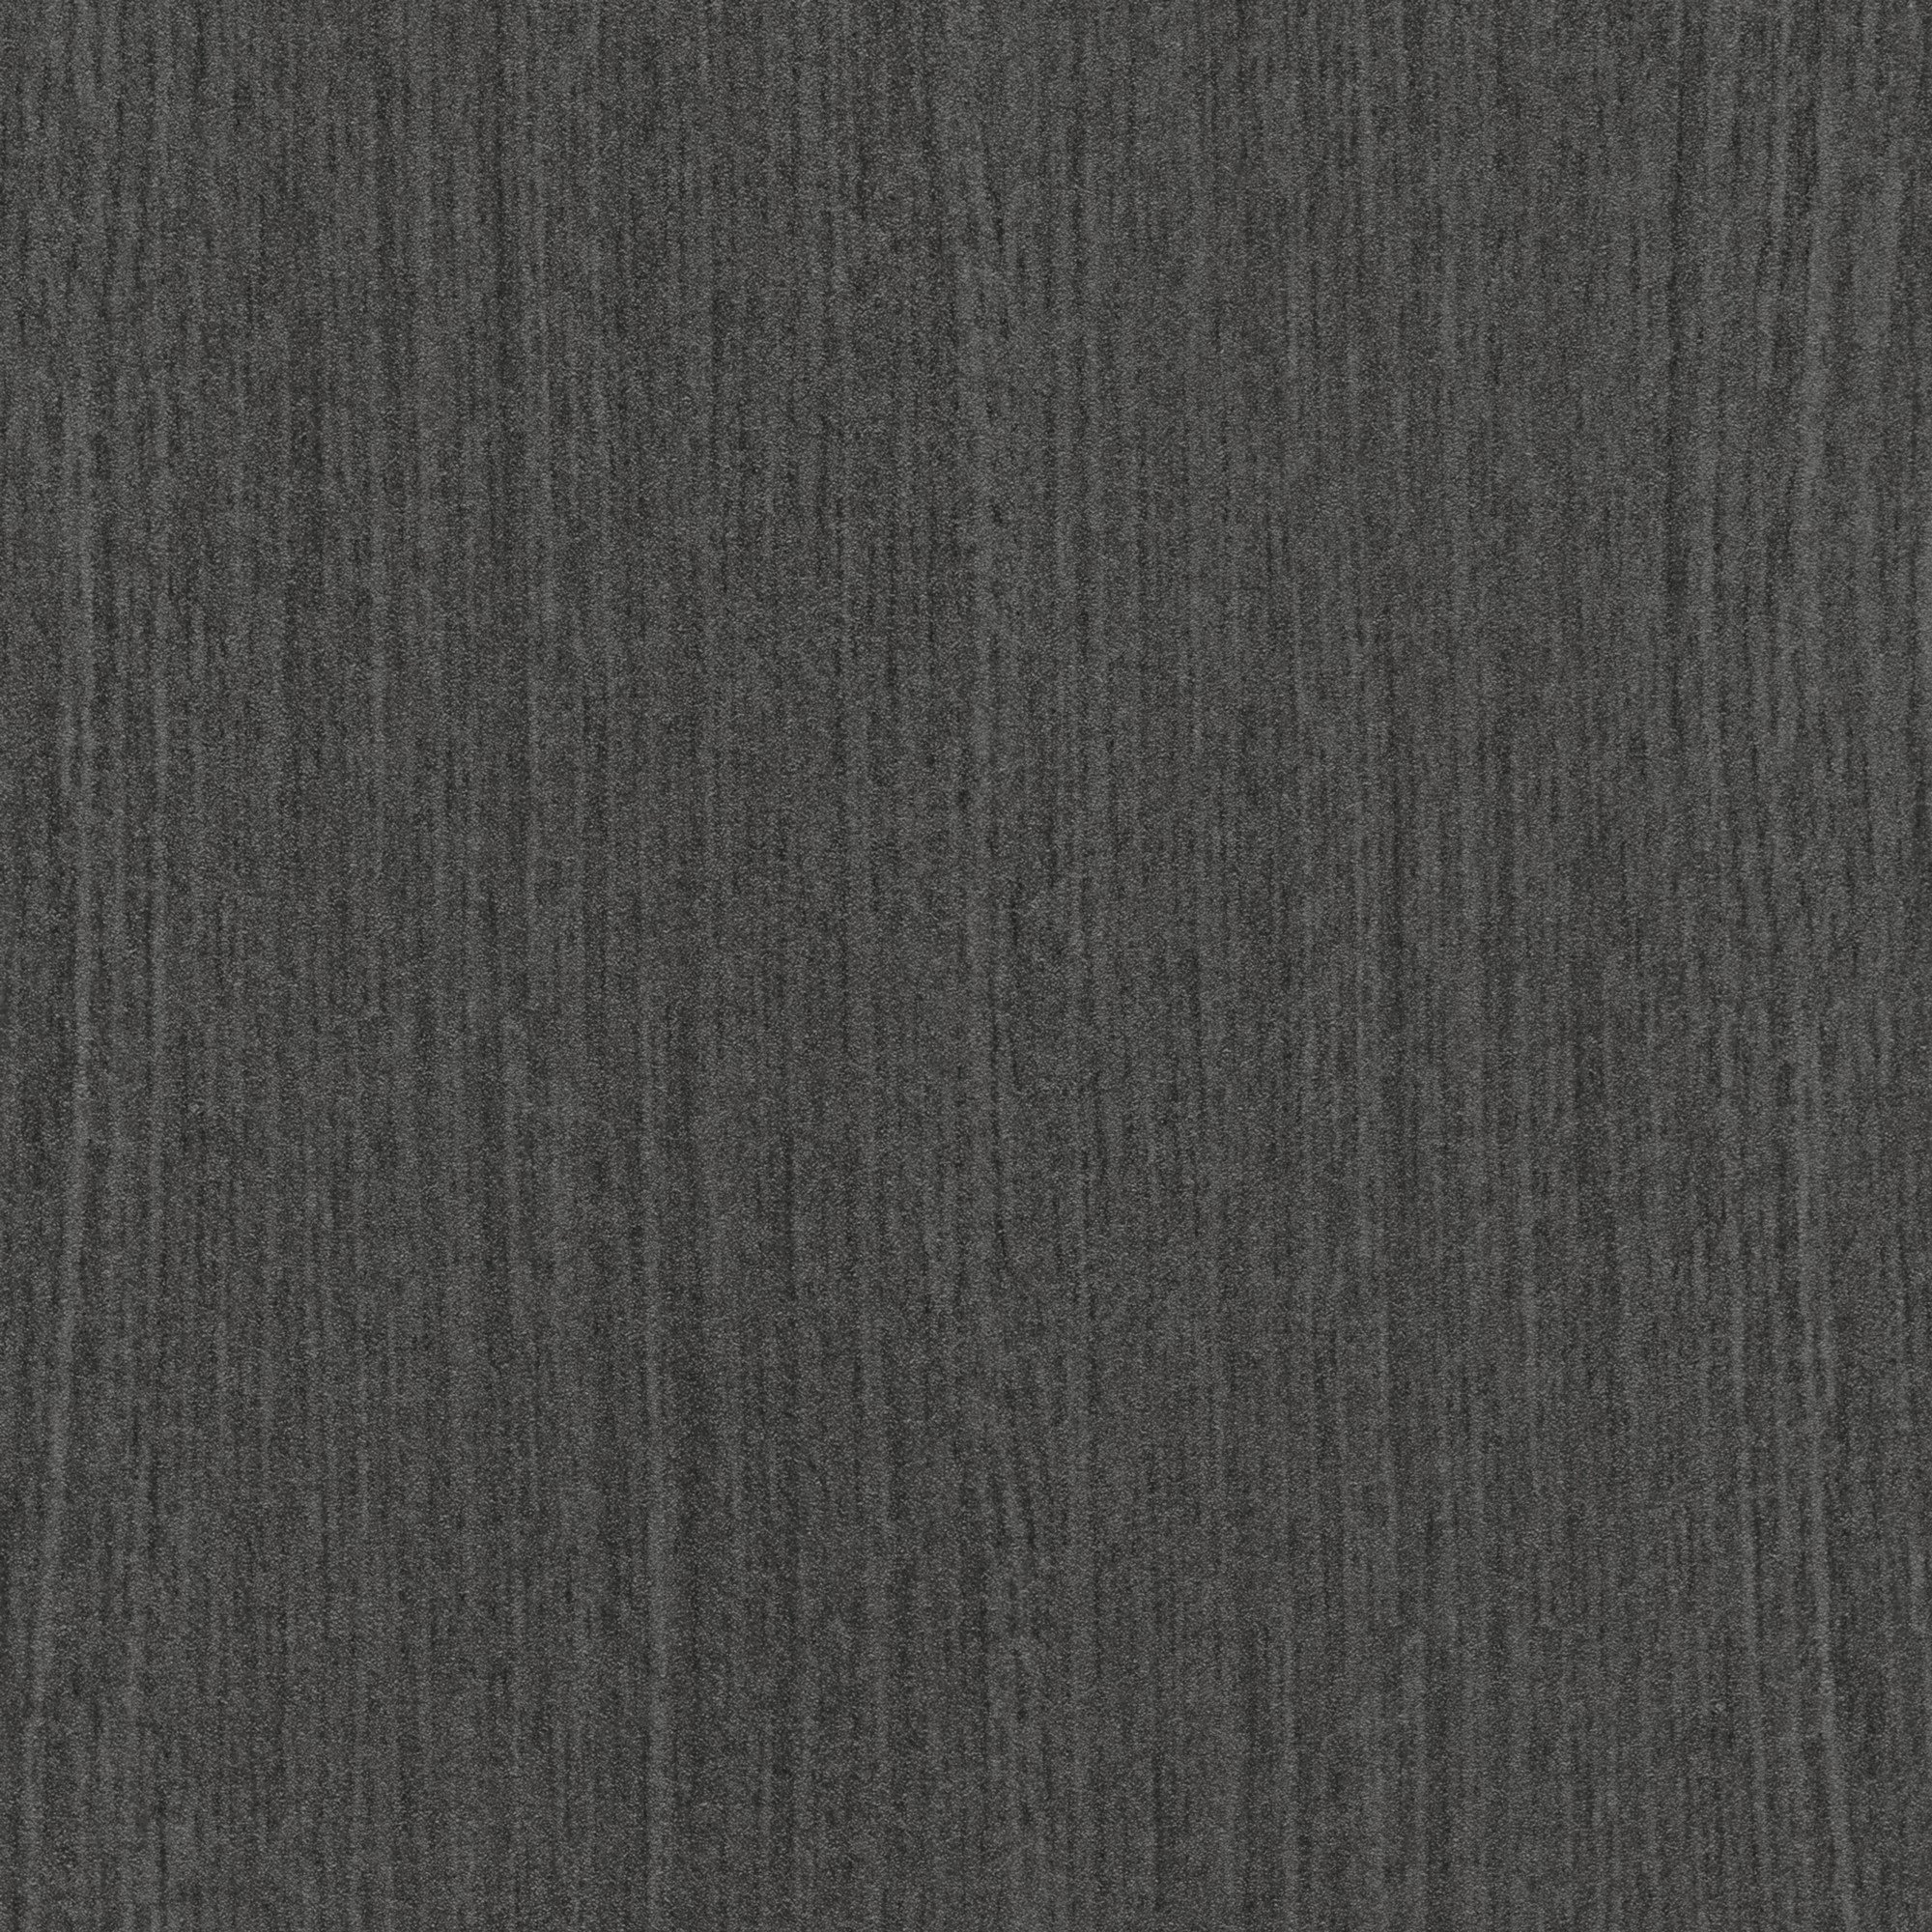 laminated stoneware wall floor tiles with wood effect oaks. Black Bedroom Furniture Sets. Home Design Ideas